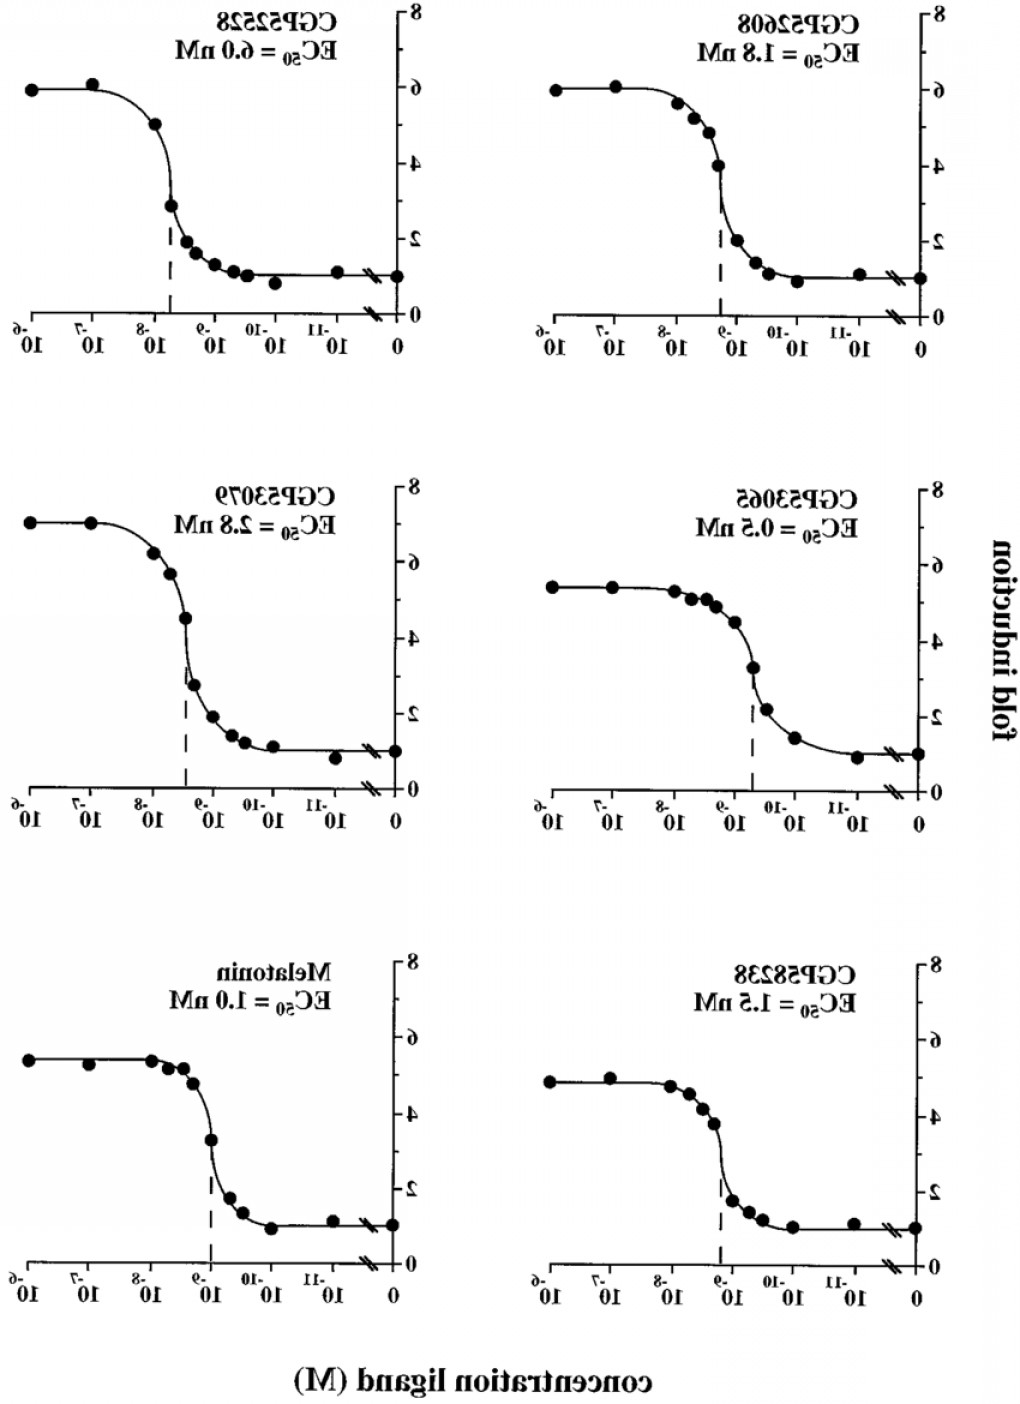 RZR Vector Black And White: Dose Response Curves For Thiazolidine Diones And Melatonin Drosophila Sl Cells Werefig